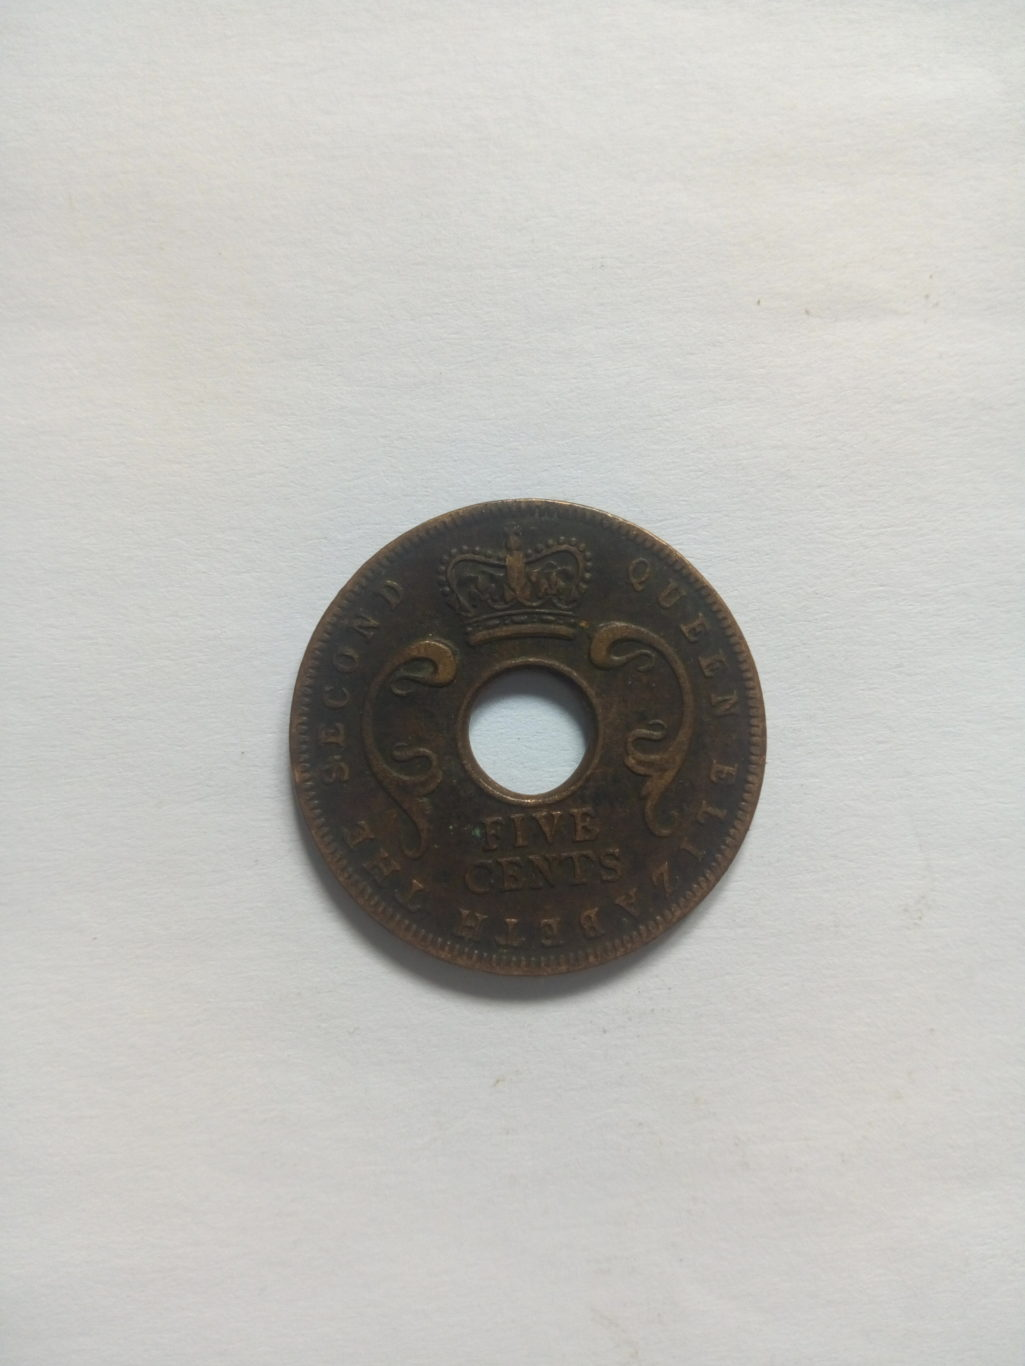 1957_queen Elizabeth the second 5 cents